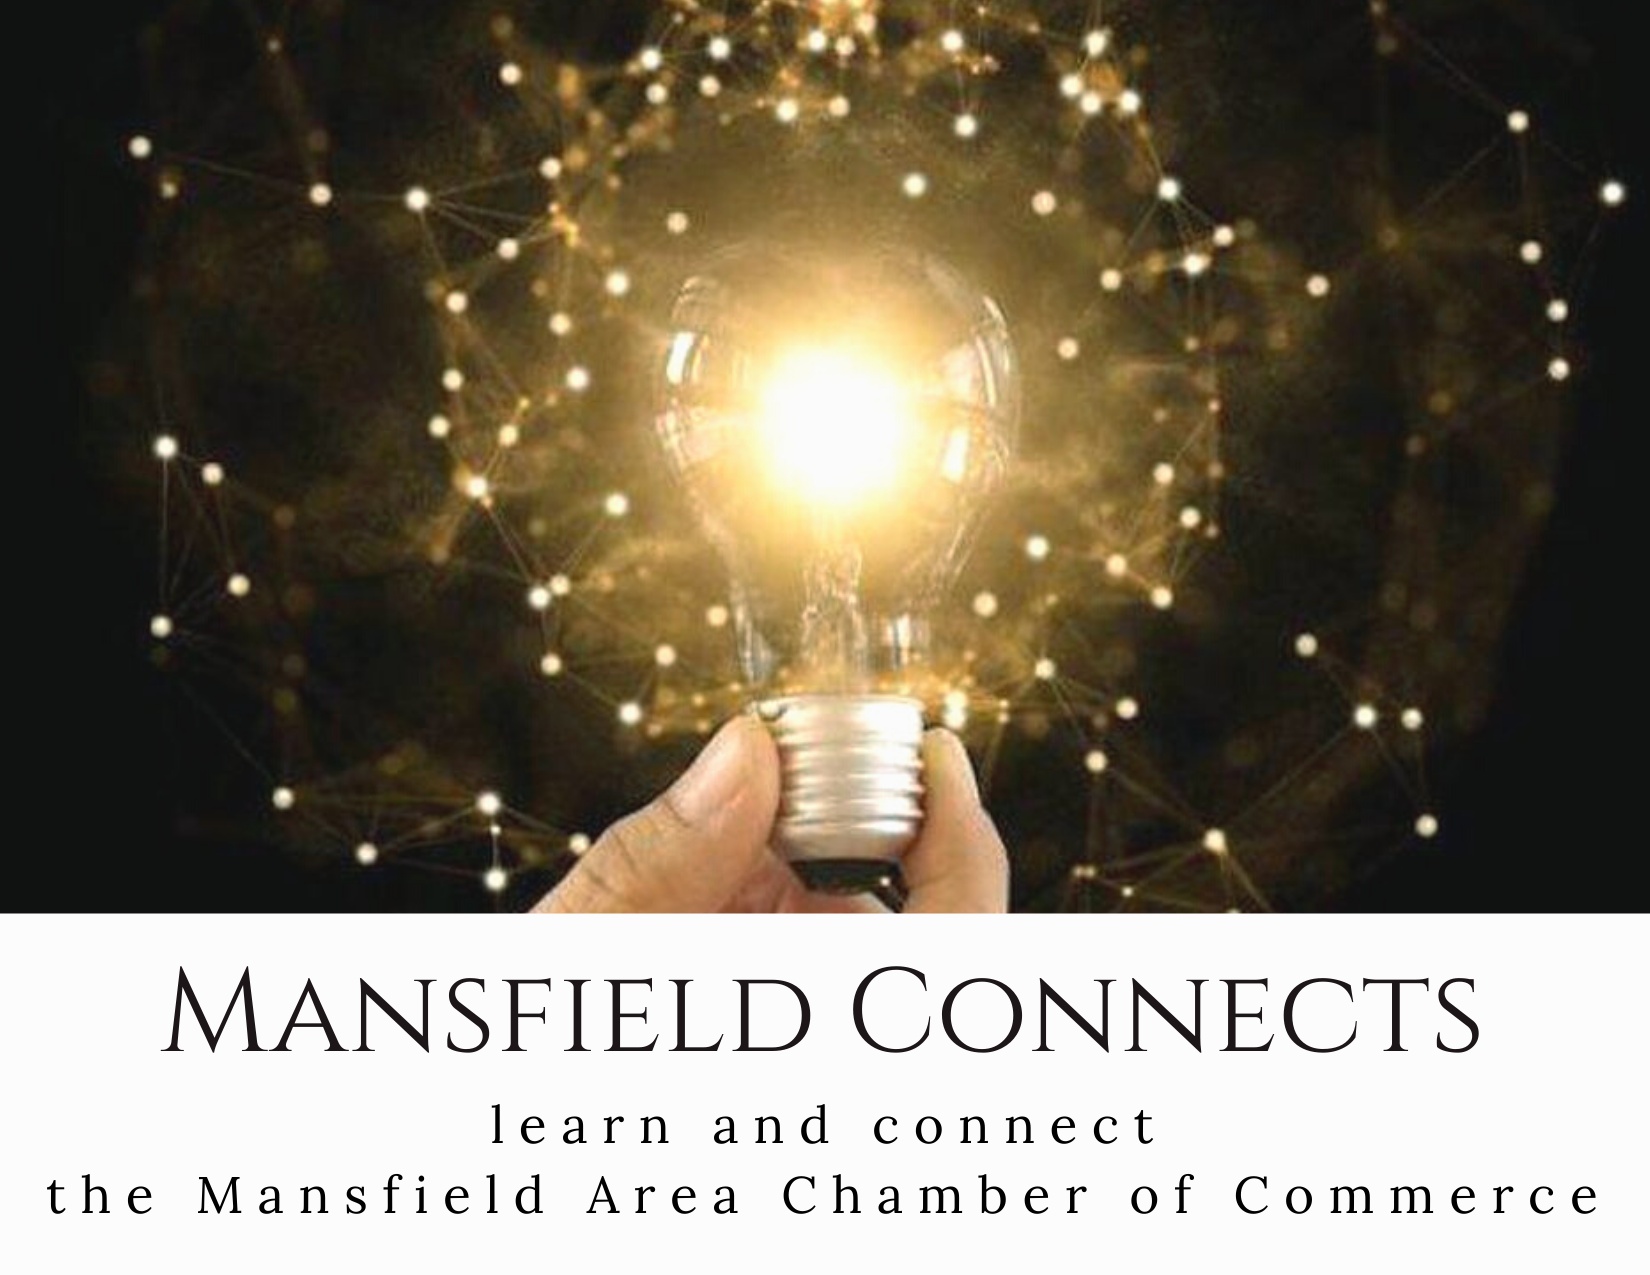 Mansfield Connects